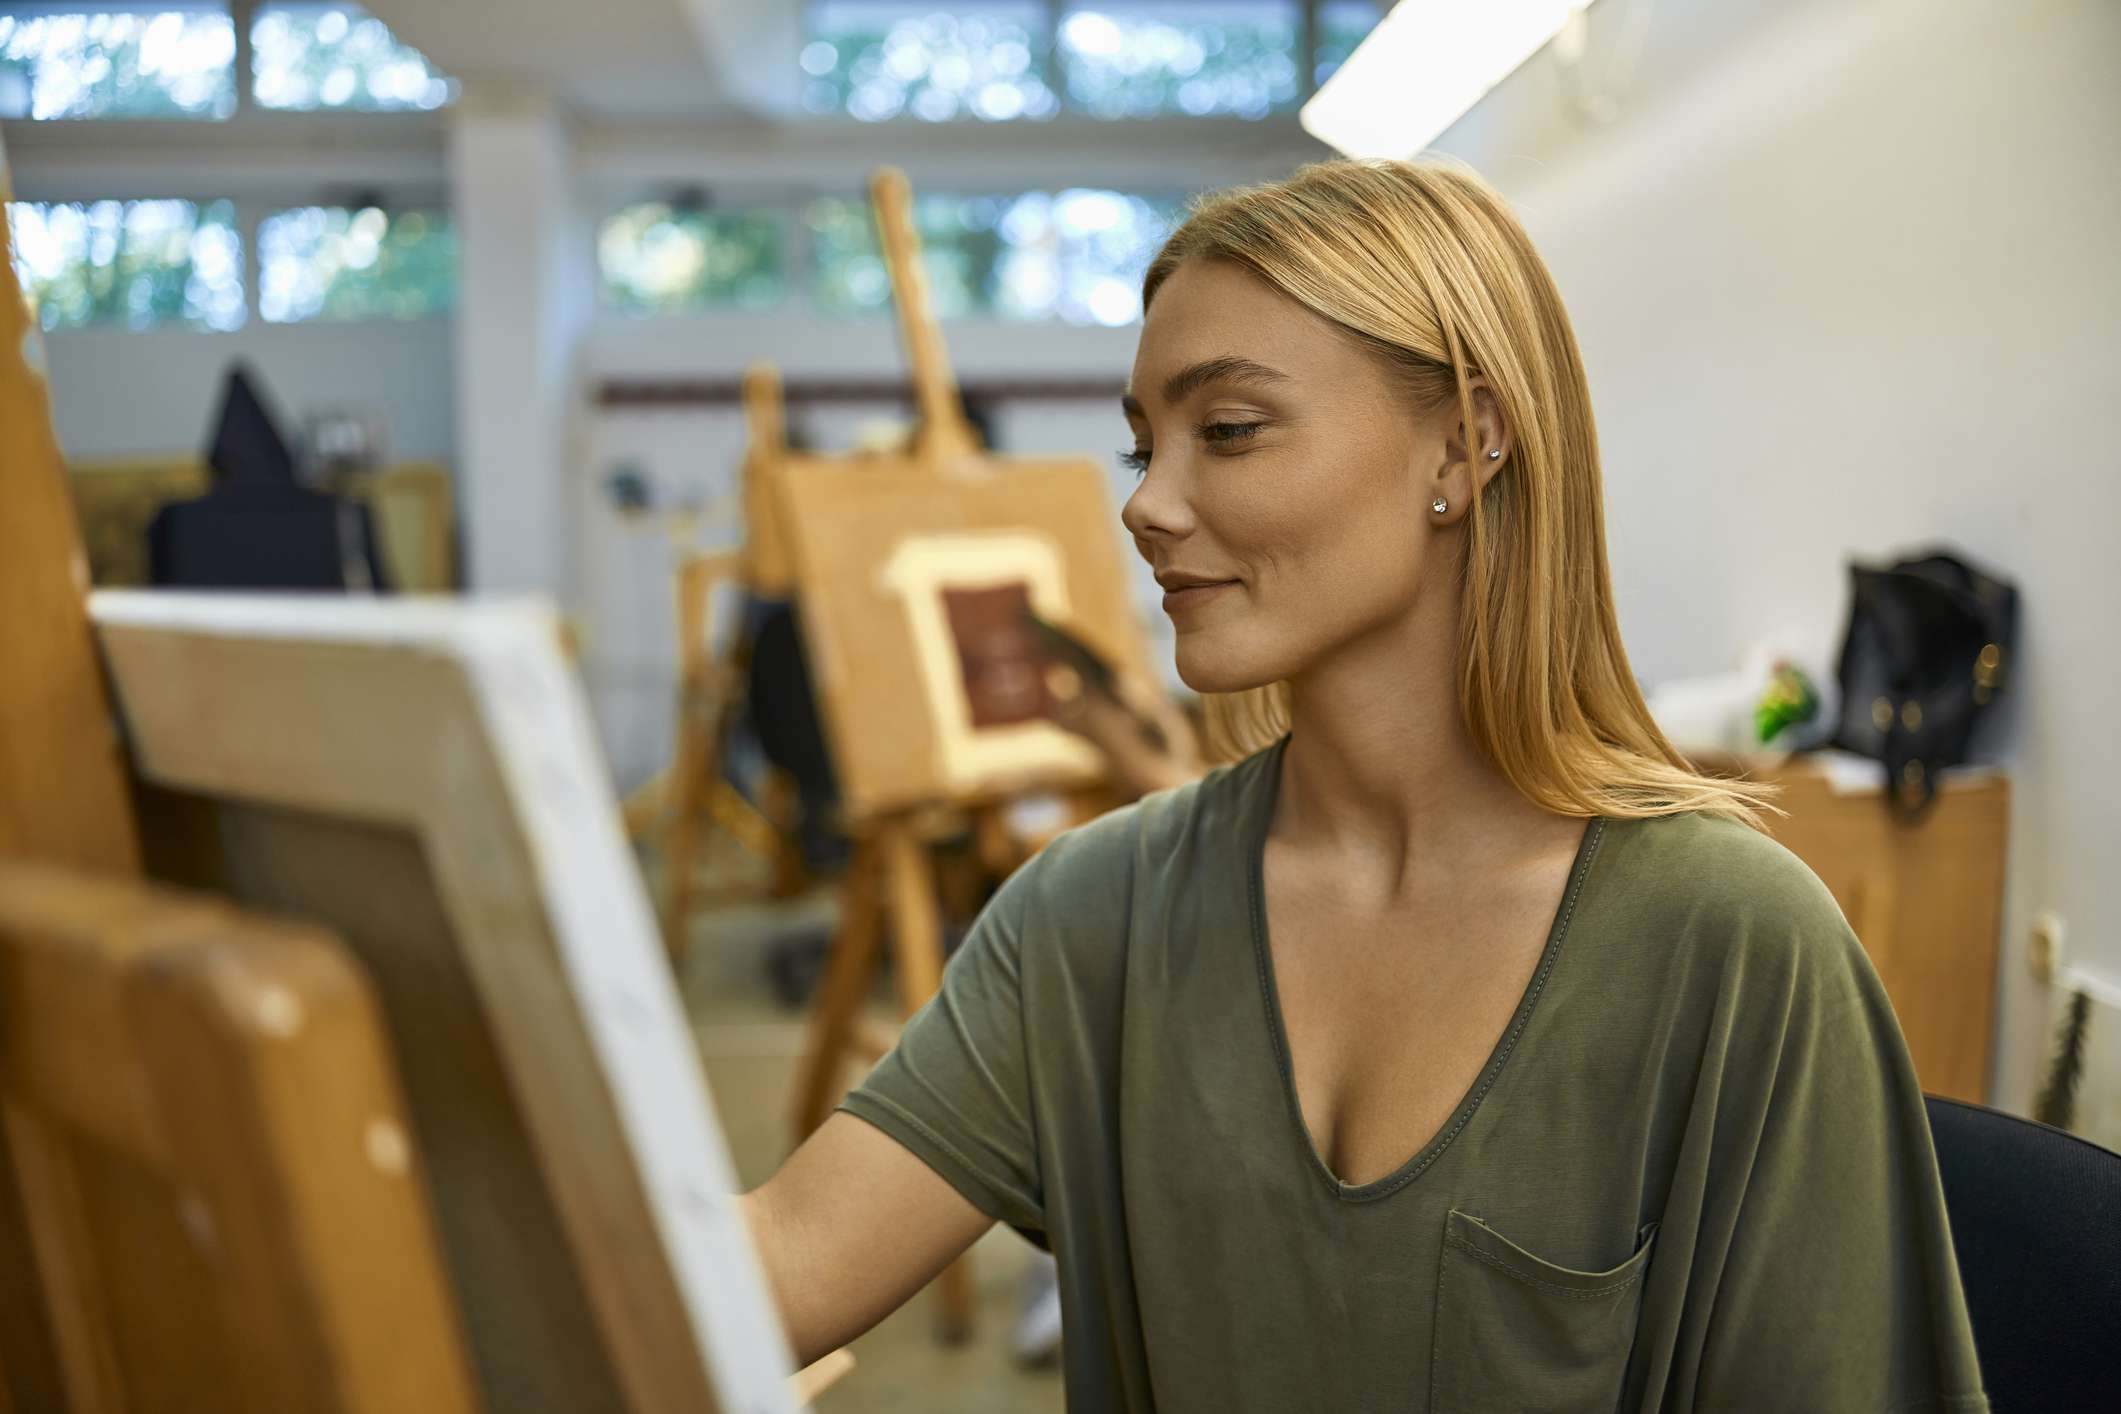 Woman paints on canvas in art class